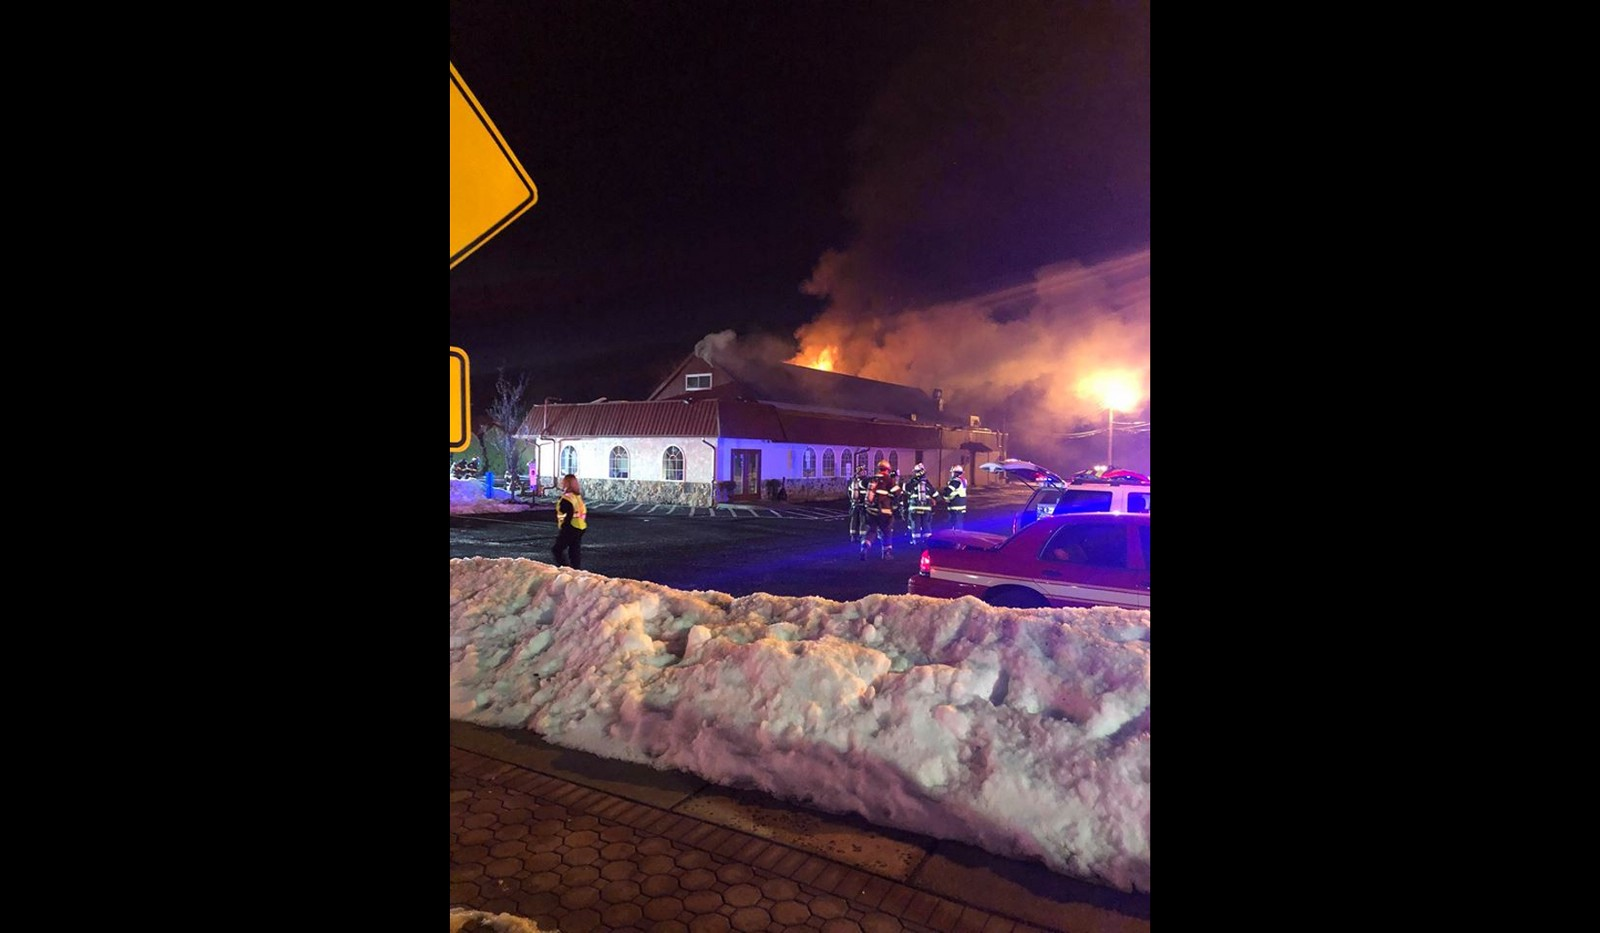 Country Town Diner catches fire last night – The Berlin Sun